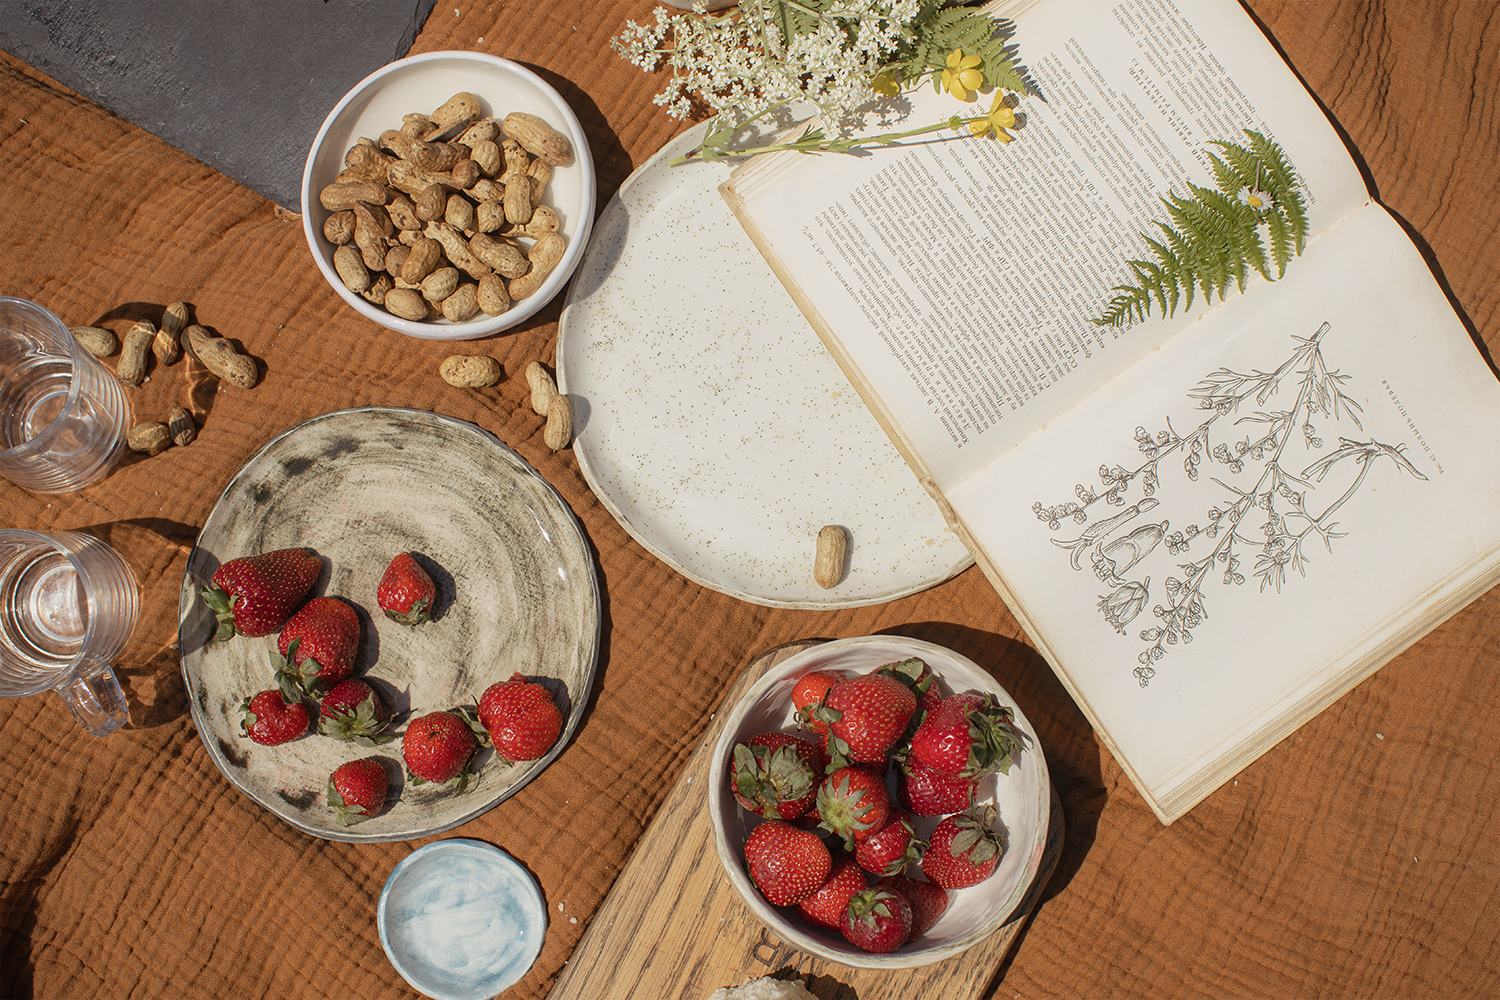 a countryside still life with strawberries, nuts and opened book